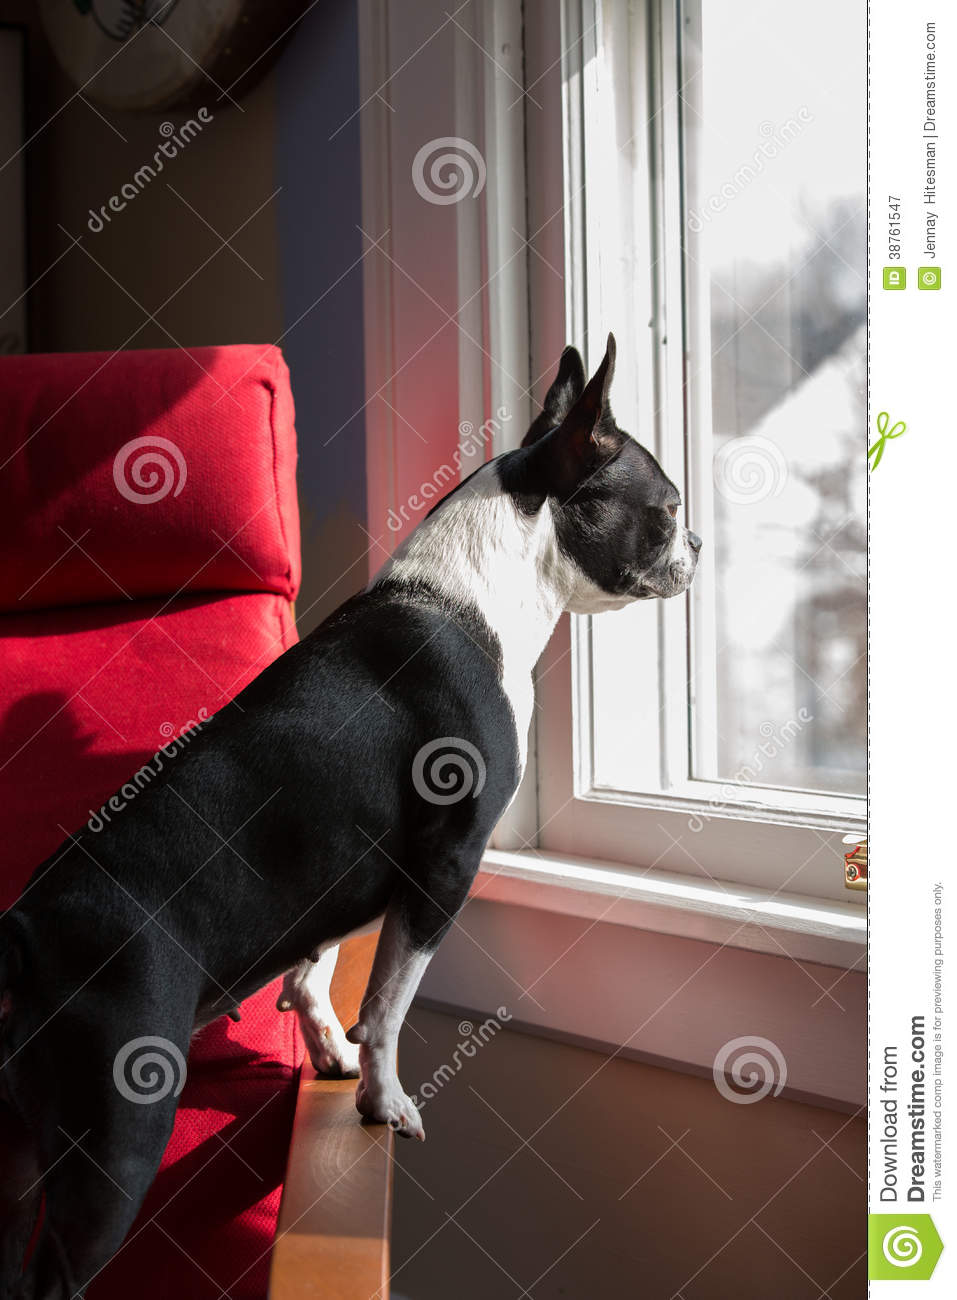 Dog standing looking out window